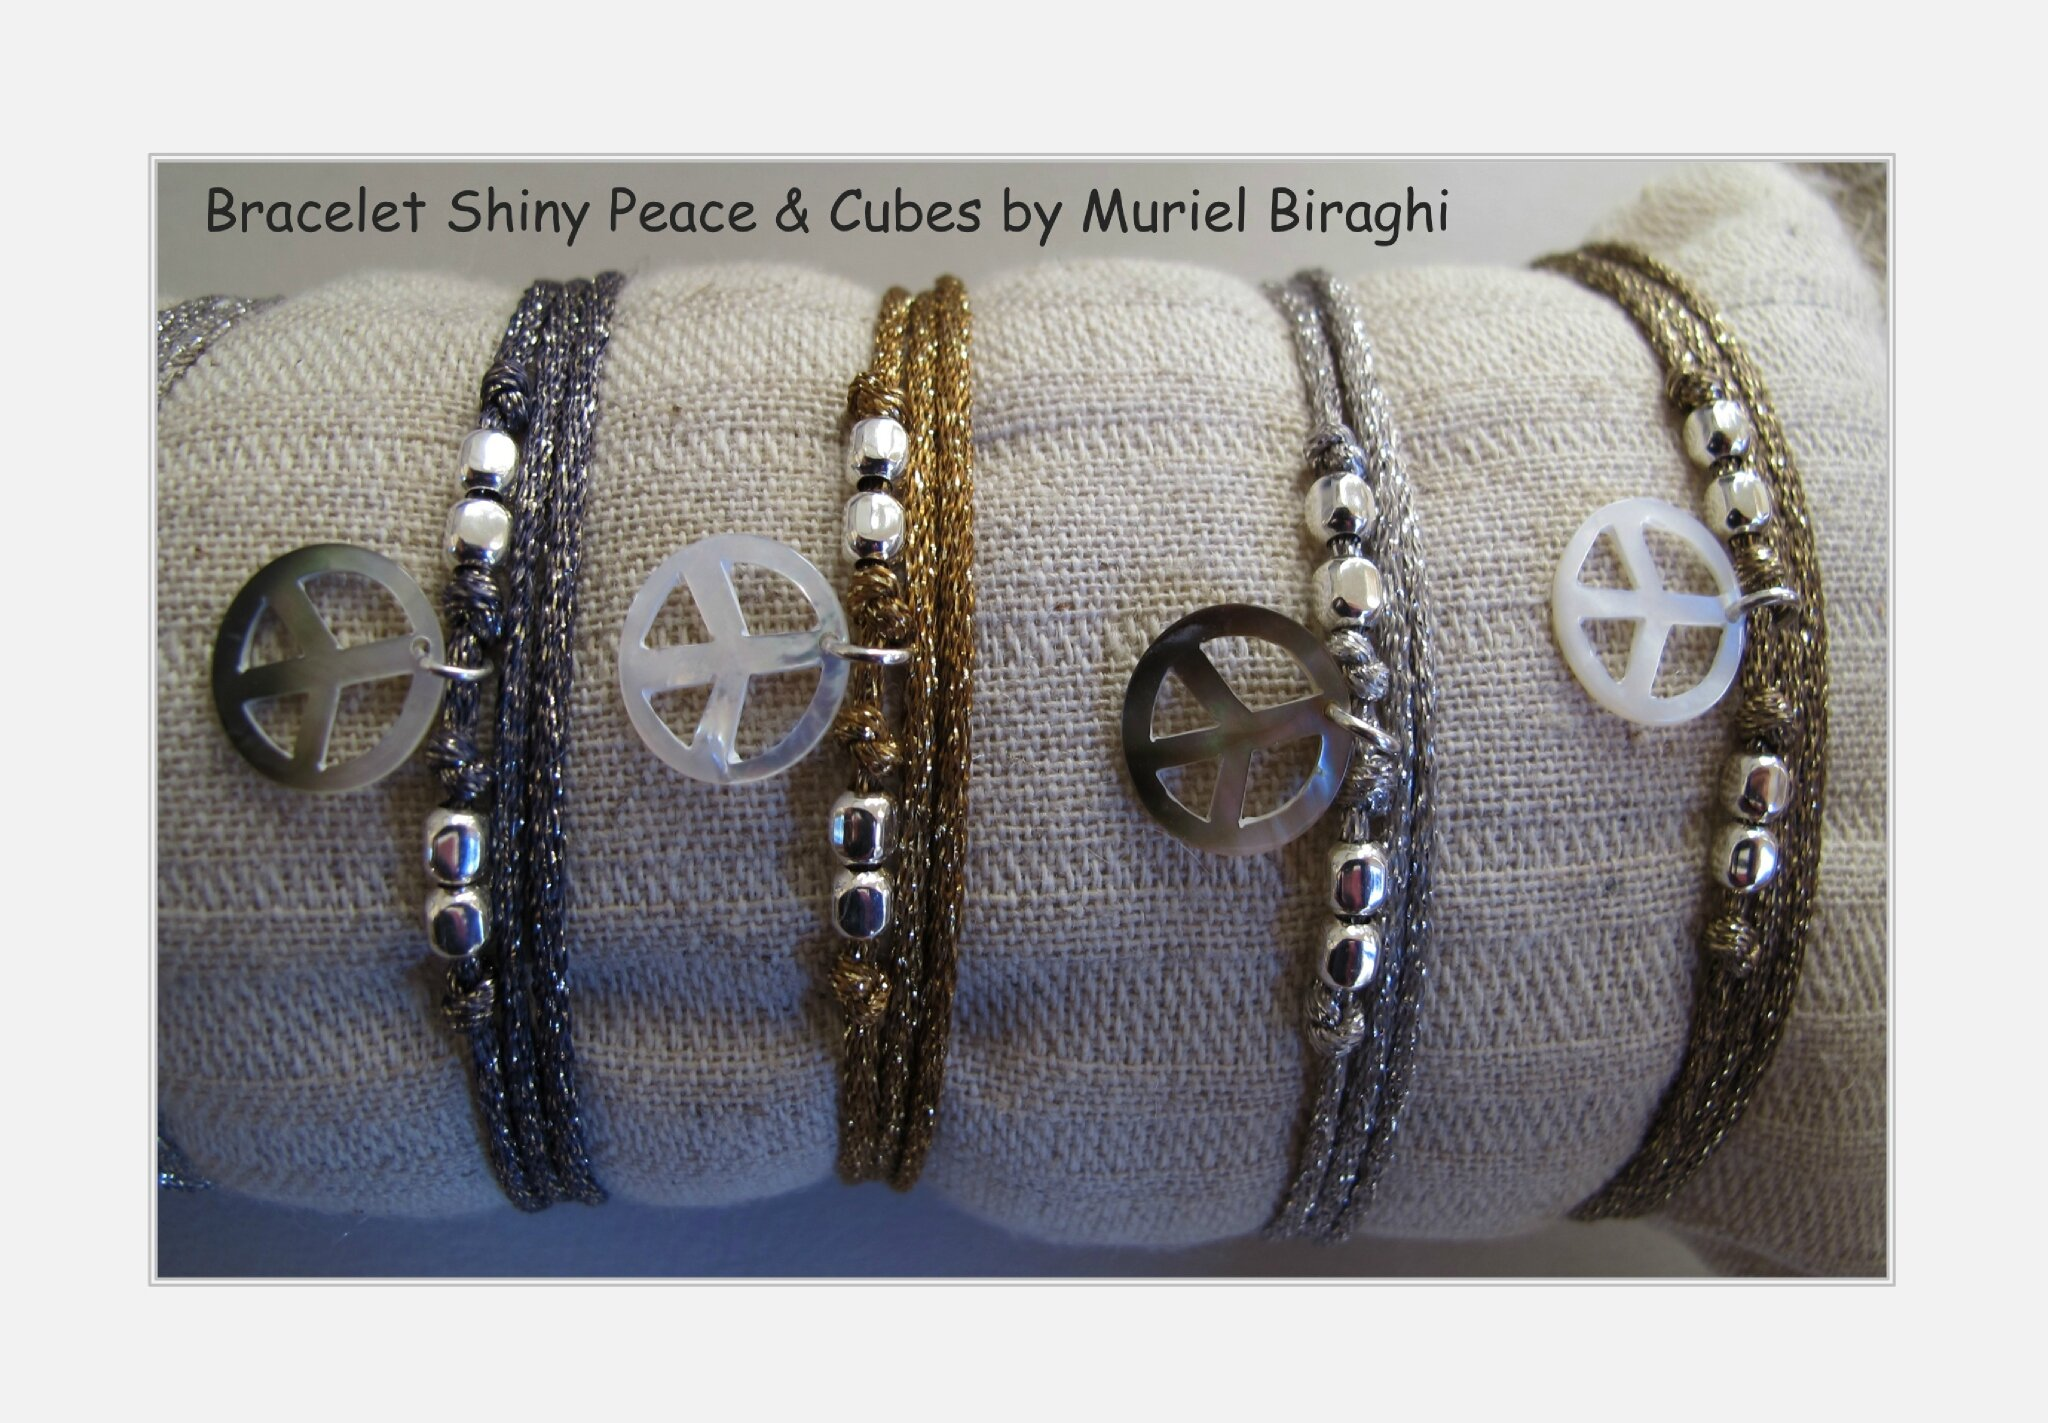 Bracelet/Collier Shiny Peace & Cubes